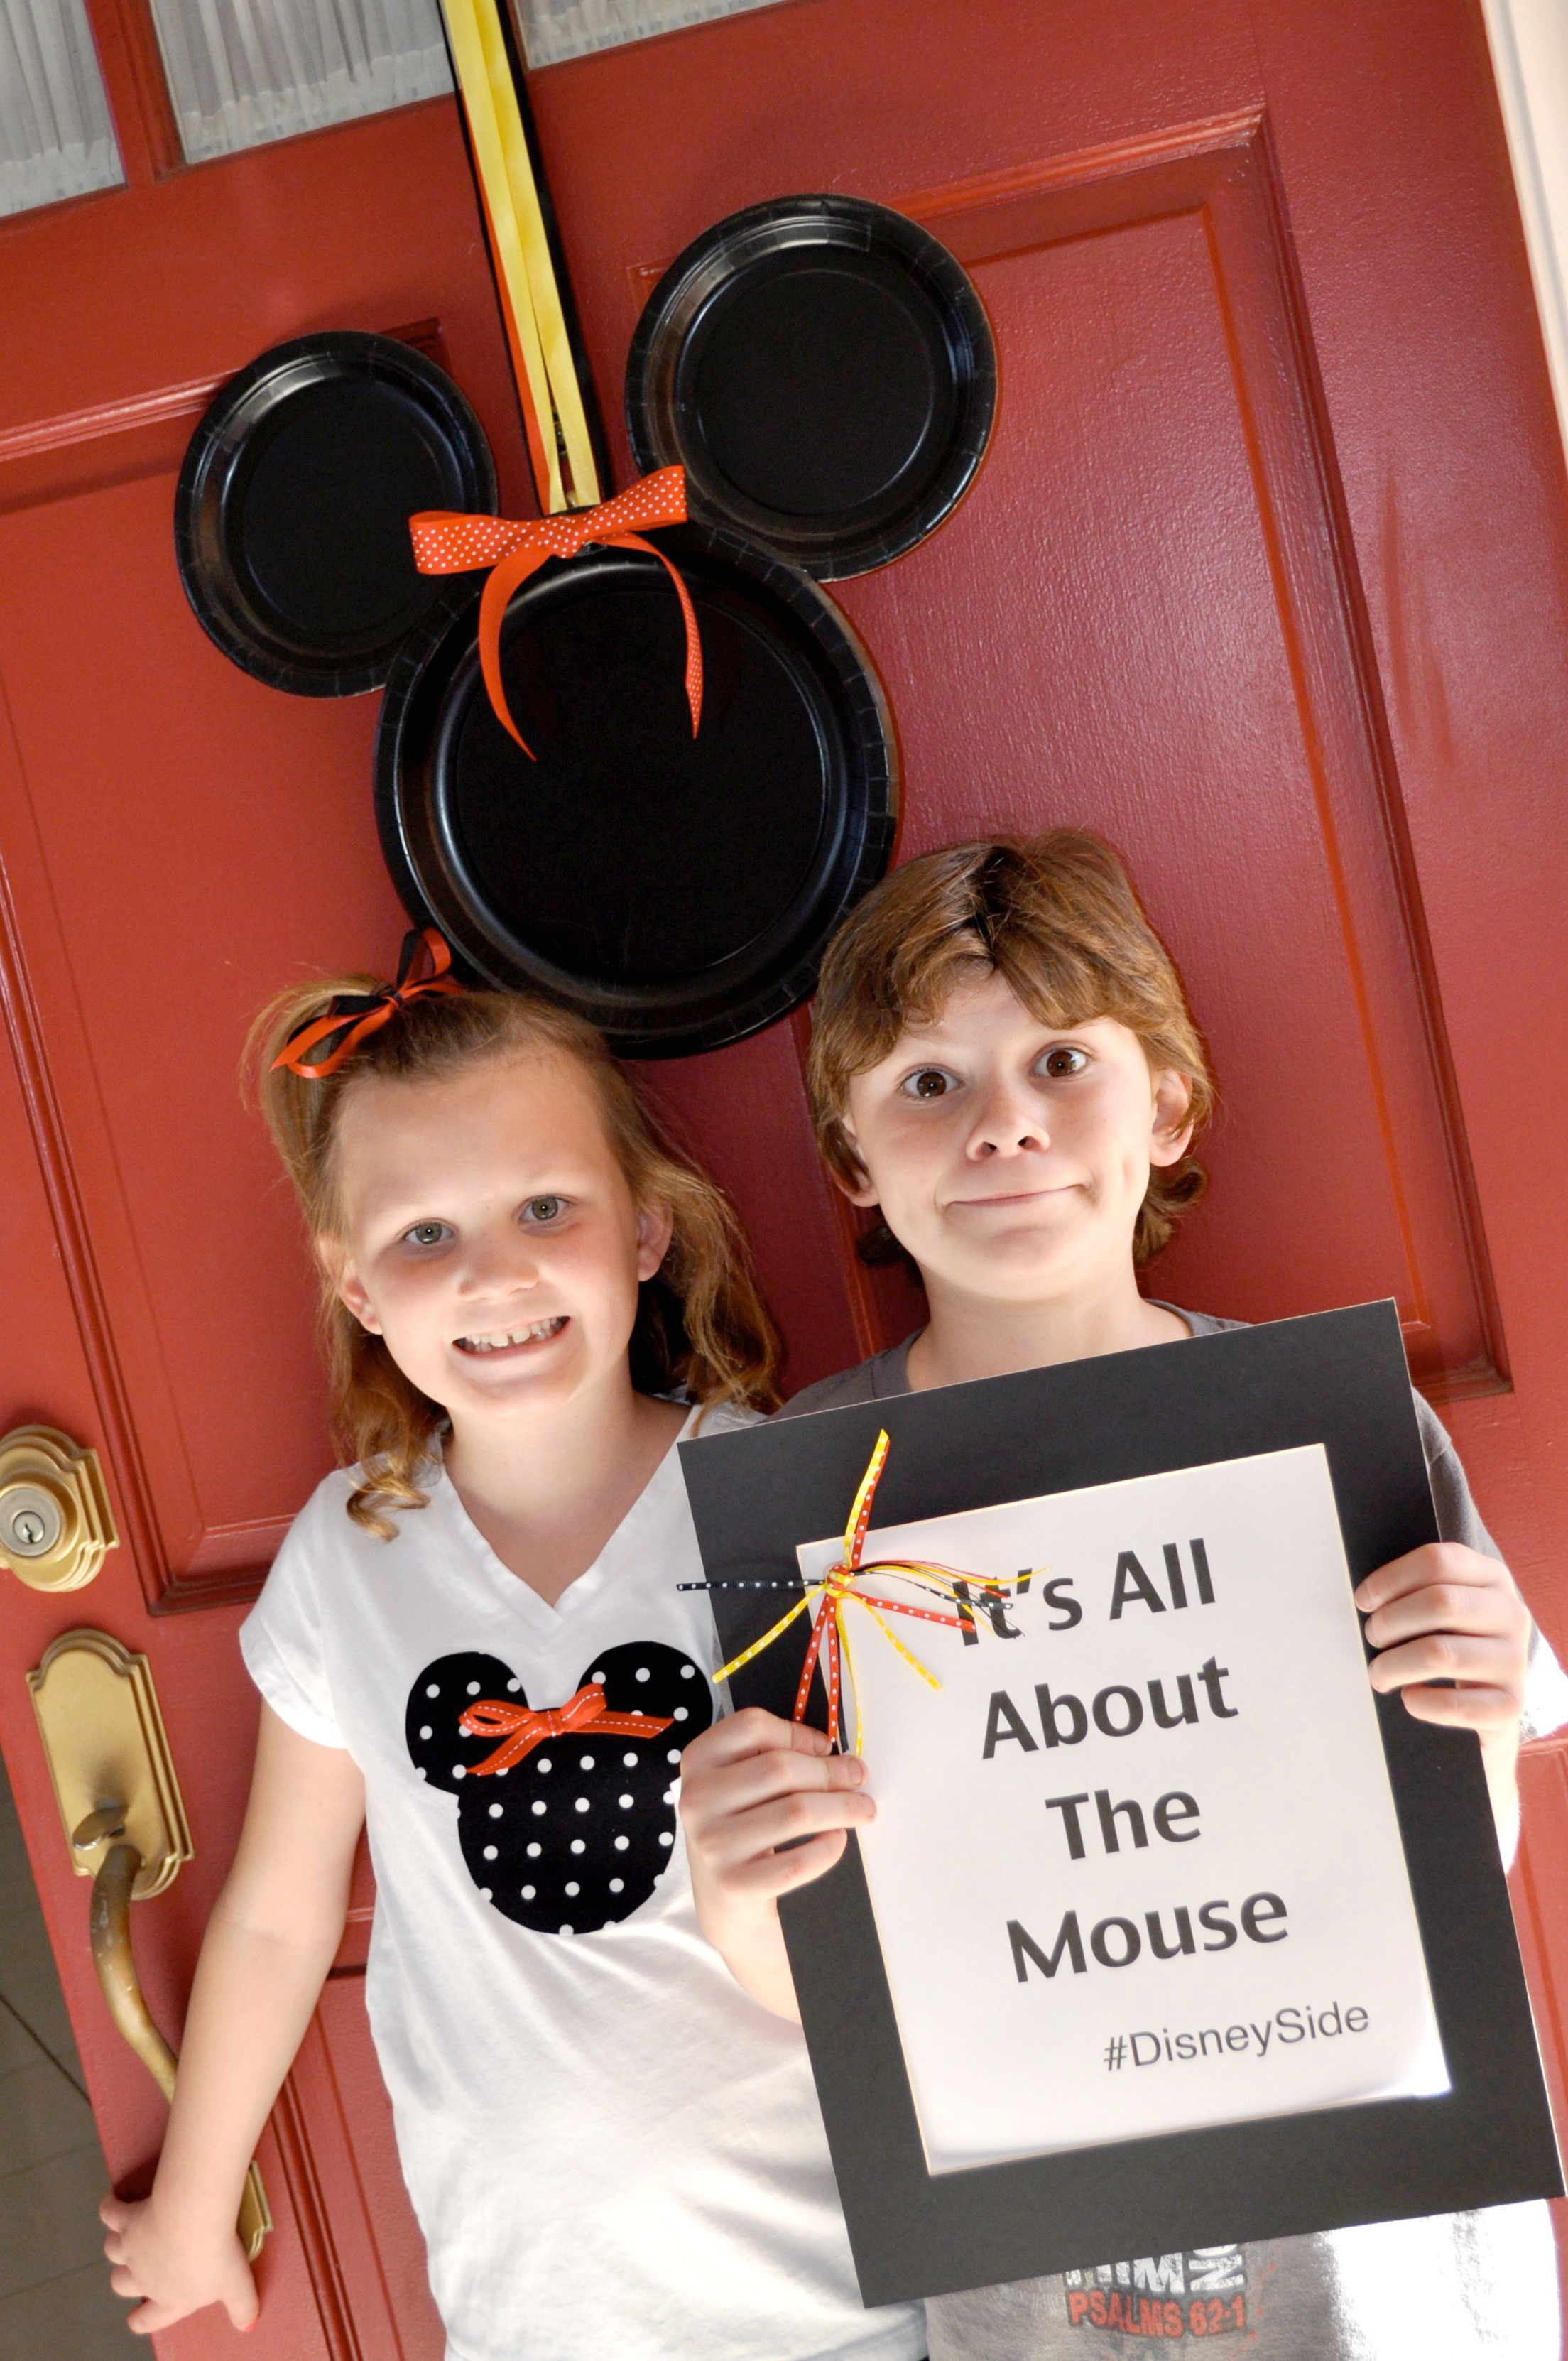 It's All About The Mouse Disney Party - Simple Sojourns